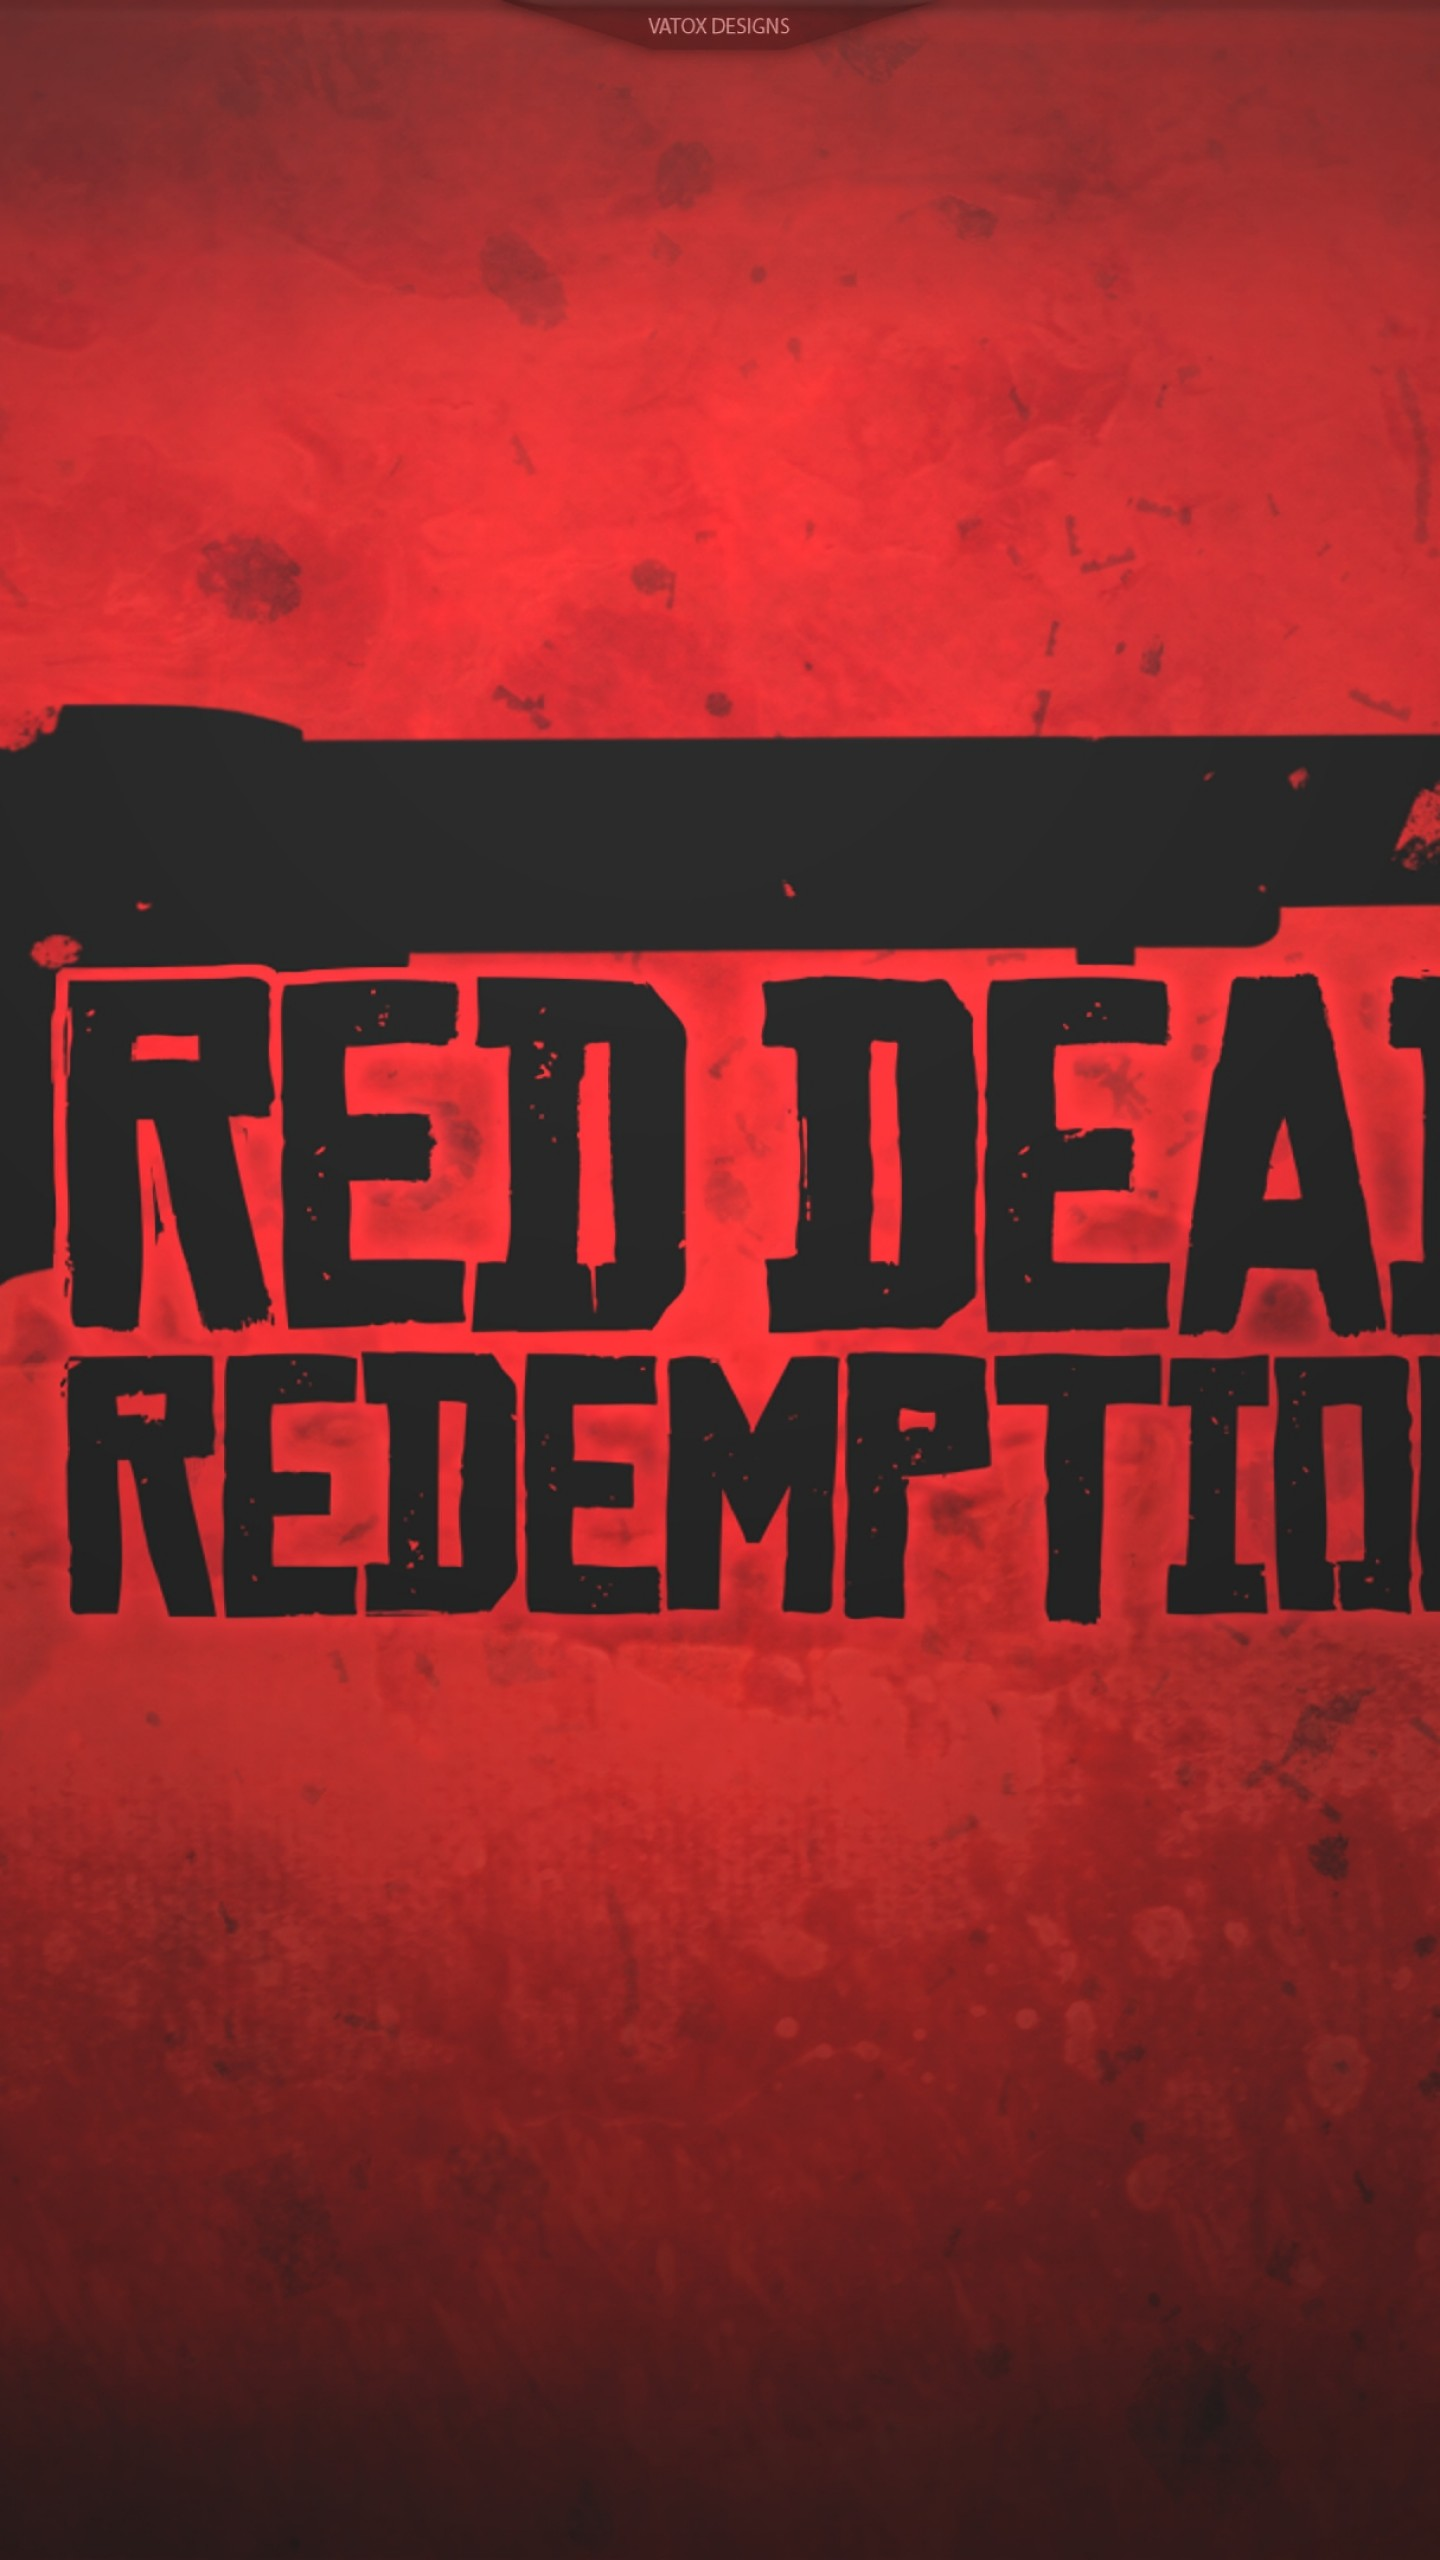 Wallpaper Red Dead Redemption 2 Poster 4k Games 18210 Page 757